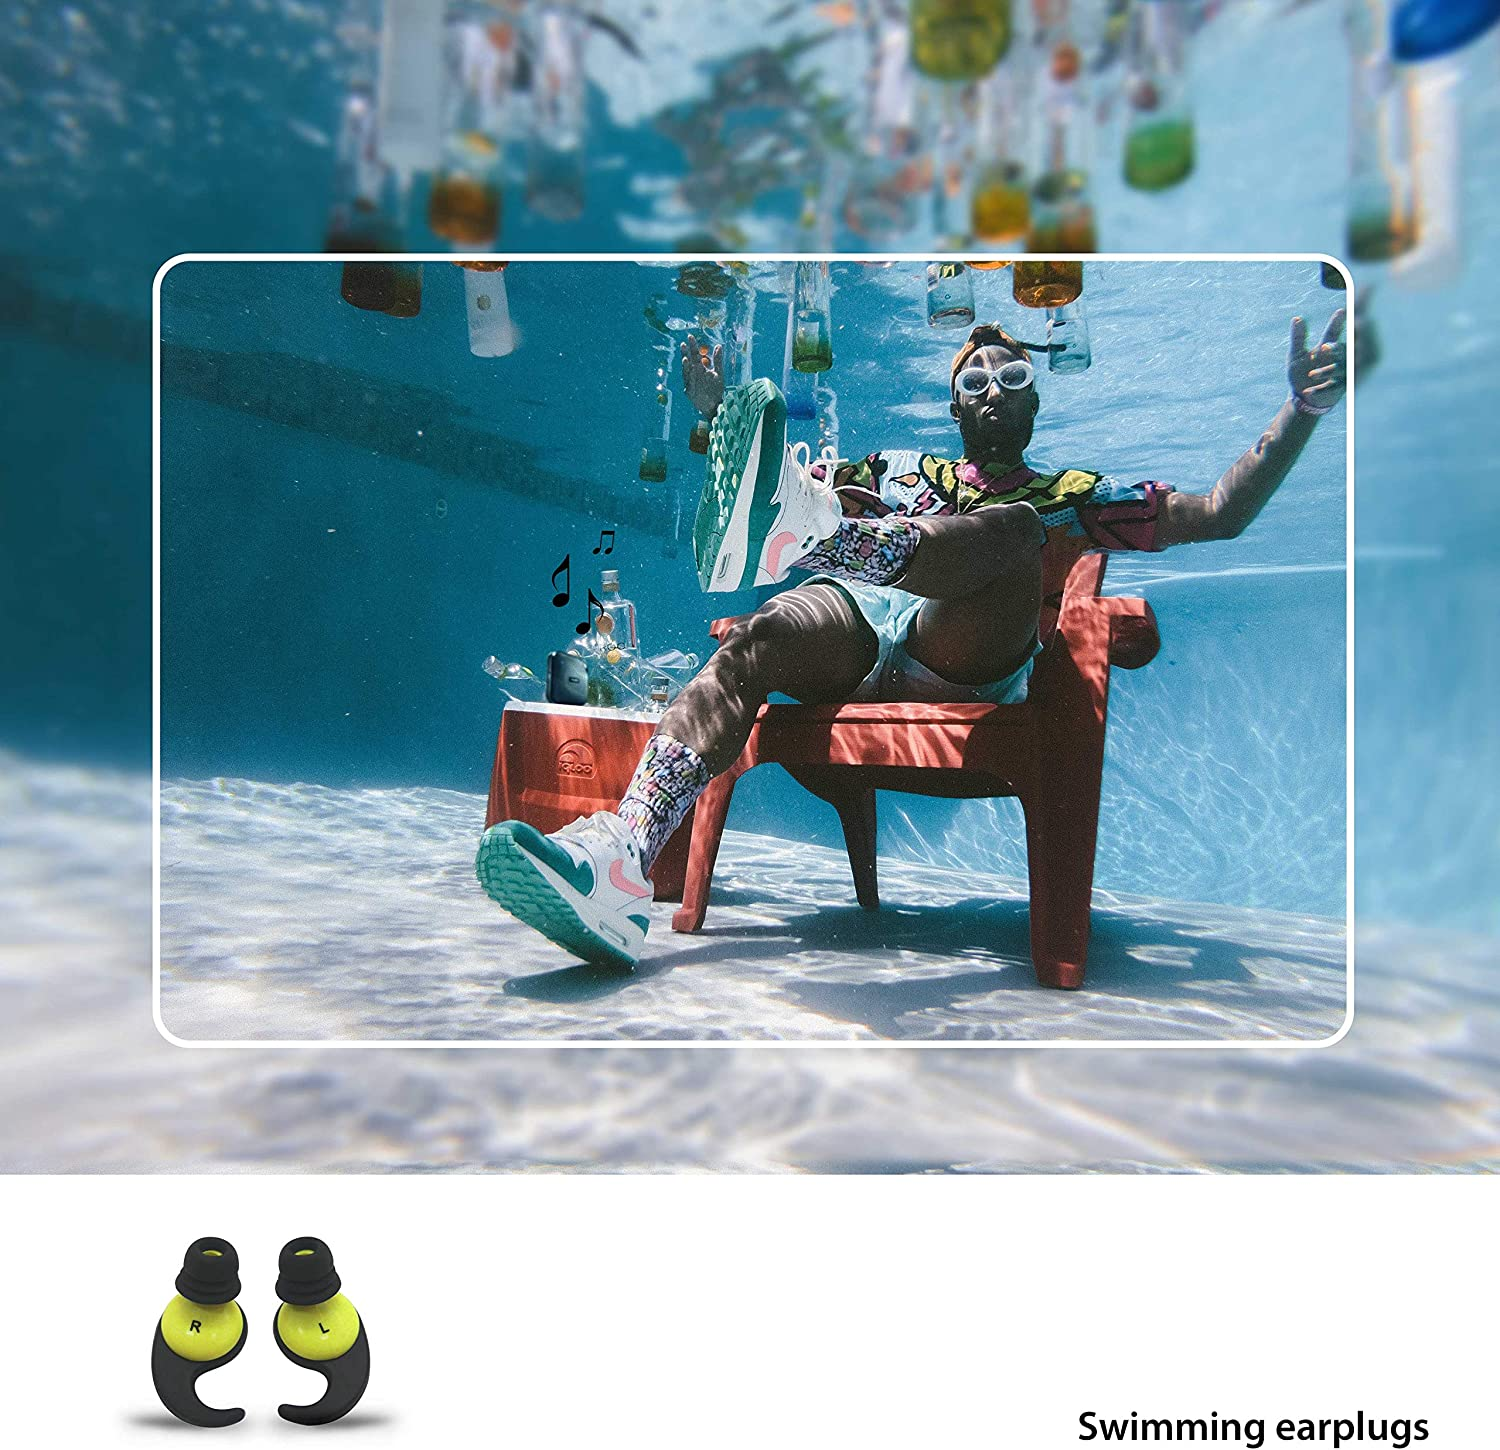 Surfing Oken Swimming Earplugs Audible Ear Plugs for Swimming Diving and Water Sports